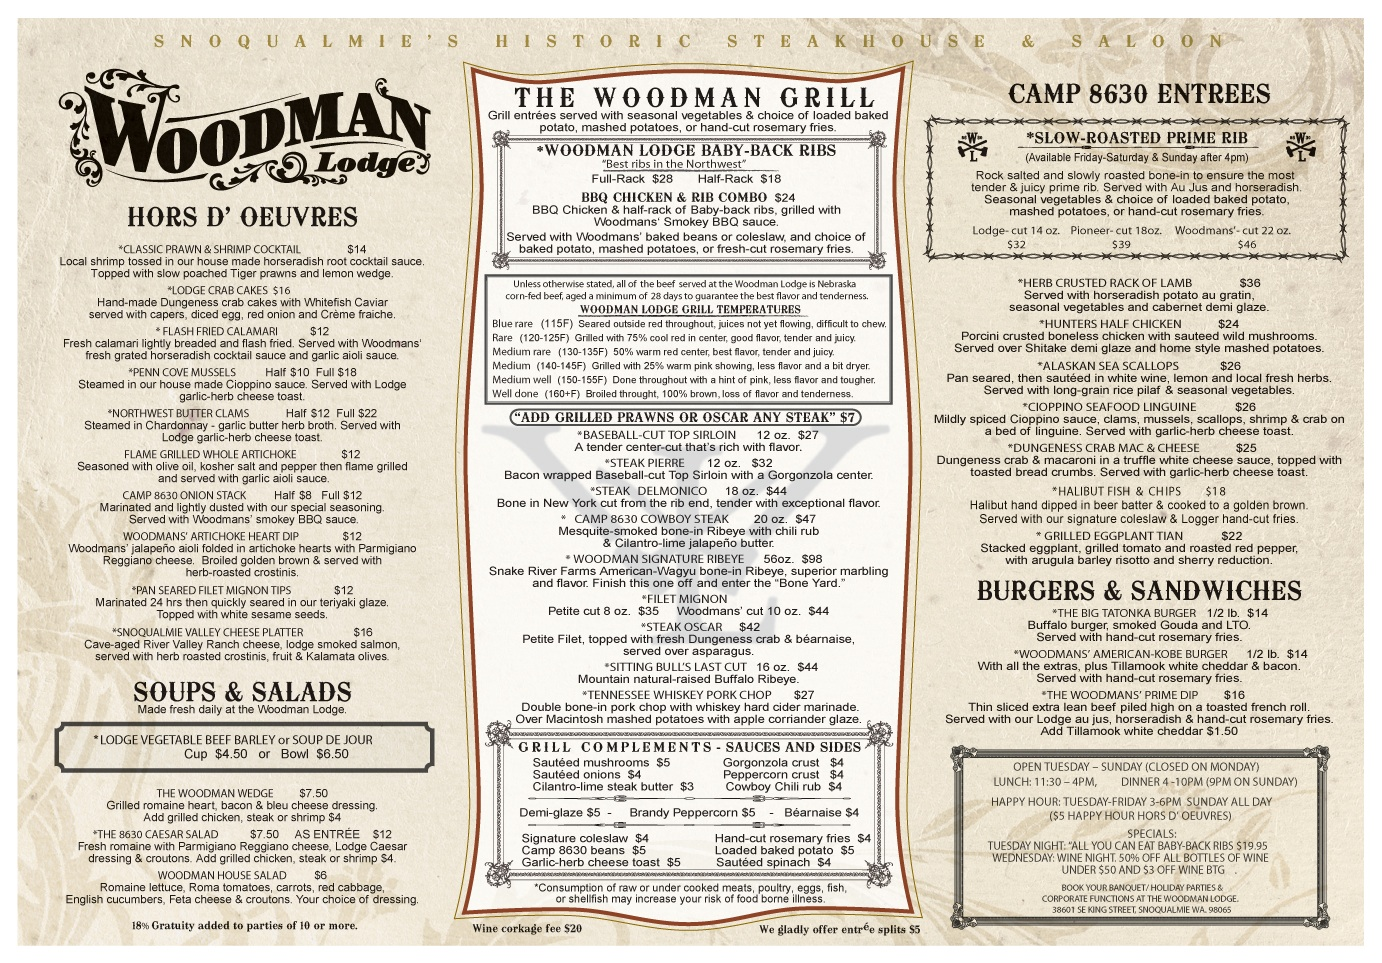 Woodman Lodge Steakhouse- Restoring a Piece of Snoqualmie